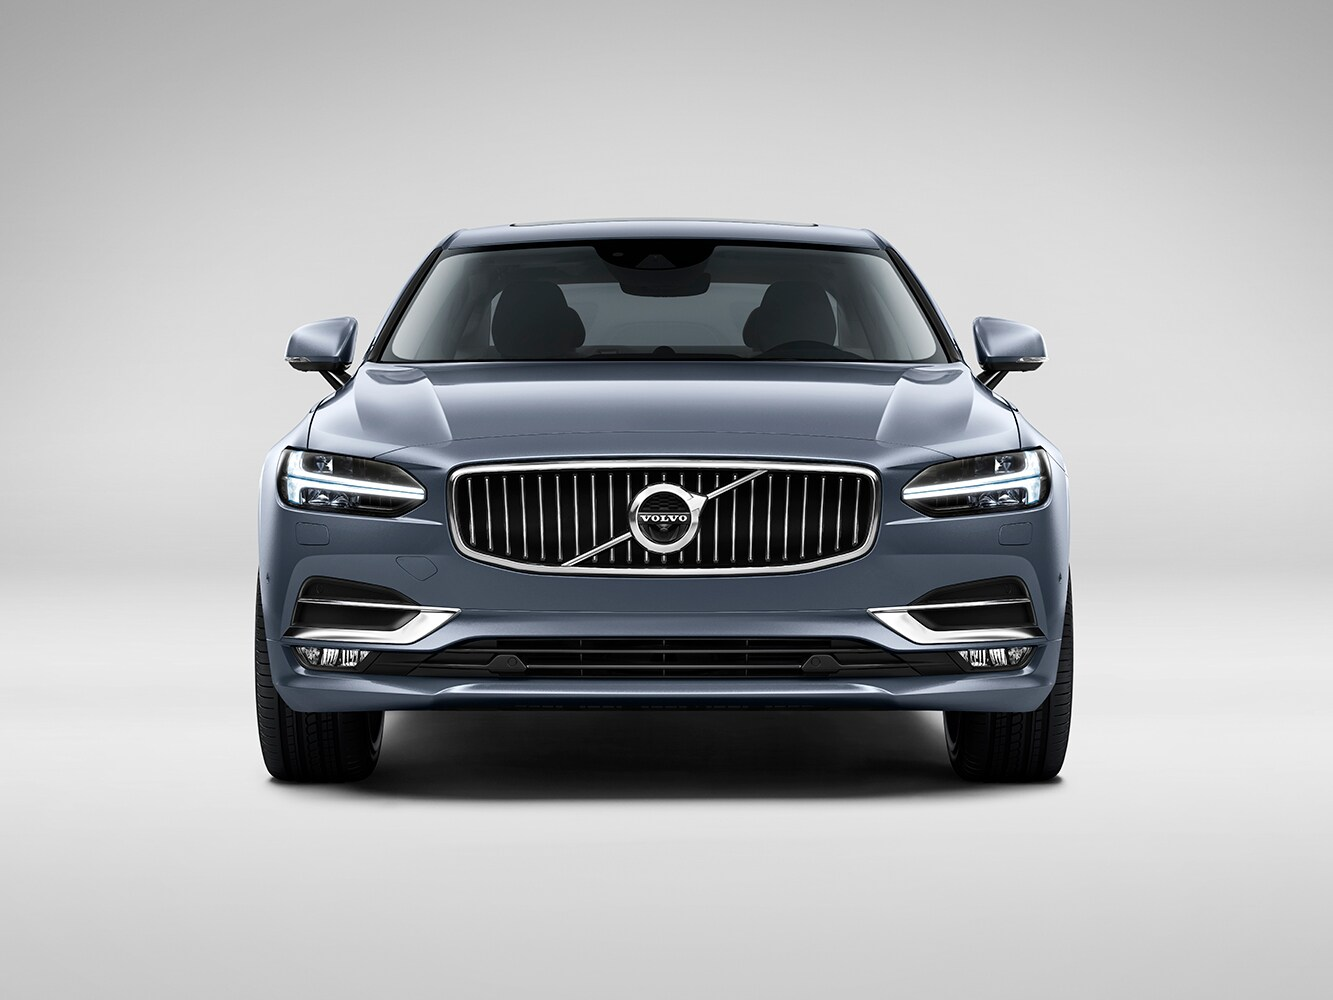 Front-on view of the Volvo S90 Inscription